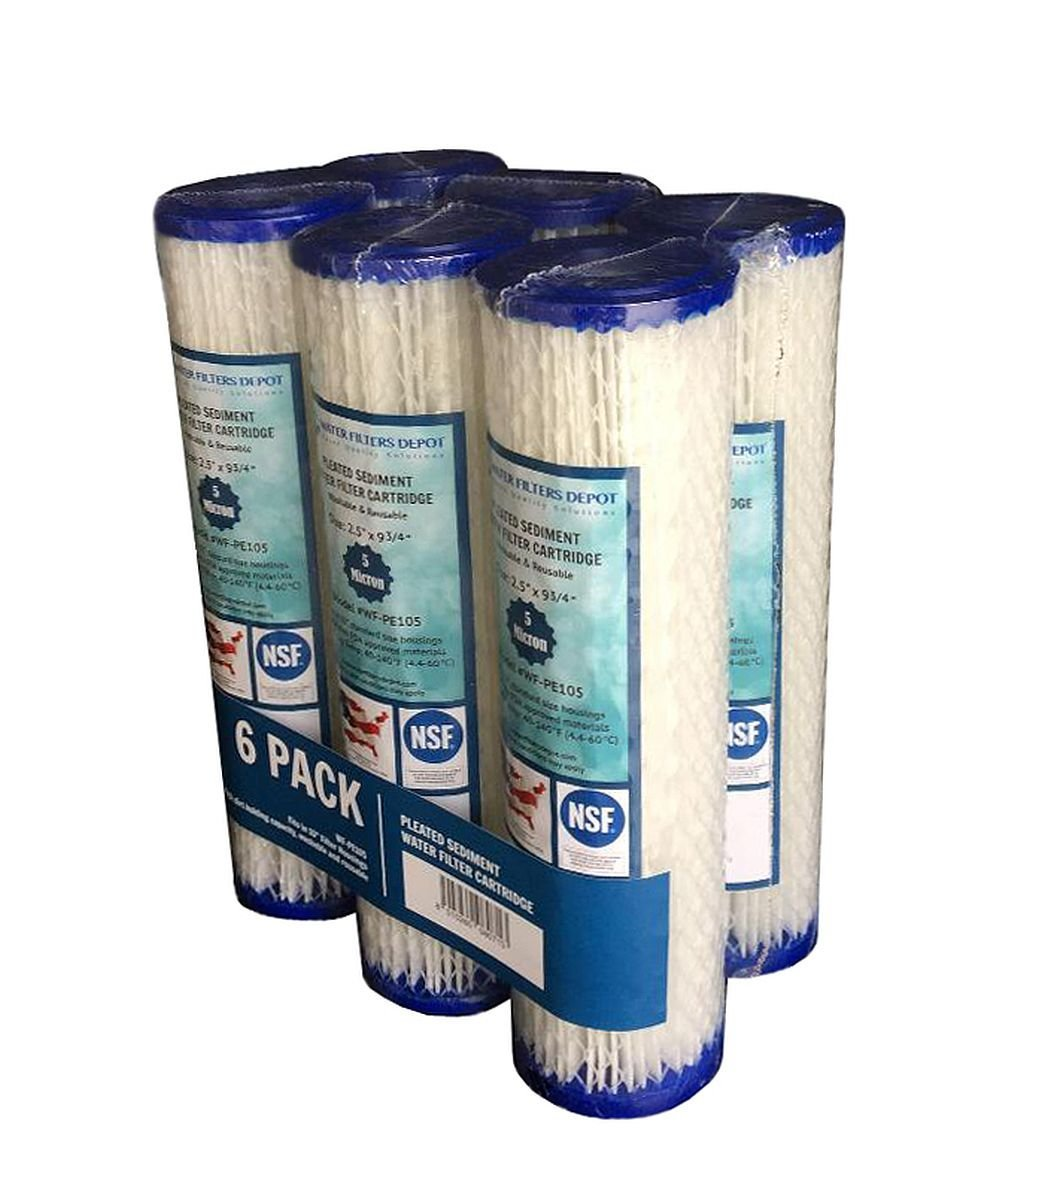 WF-SP201 2.5x20 1 Micron Sediment Water Filter Cartridge Spun Polypropylene WFD Fits in 20 Standard Size Housings of Filtration Systems 2 Pack